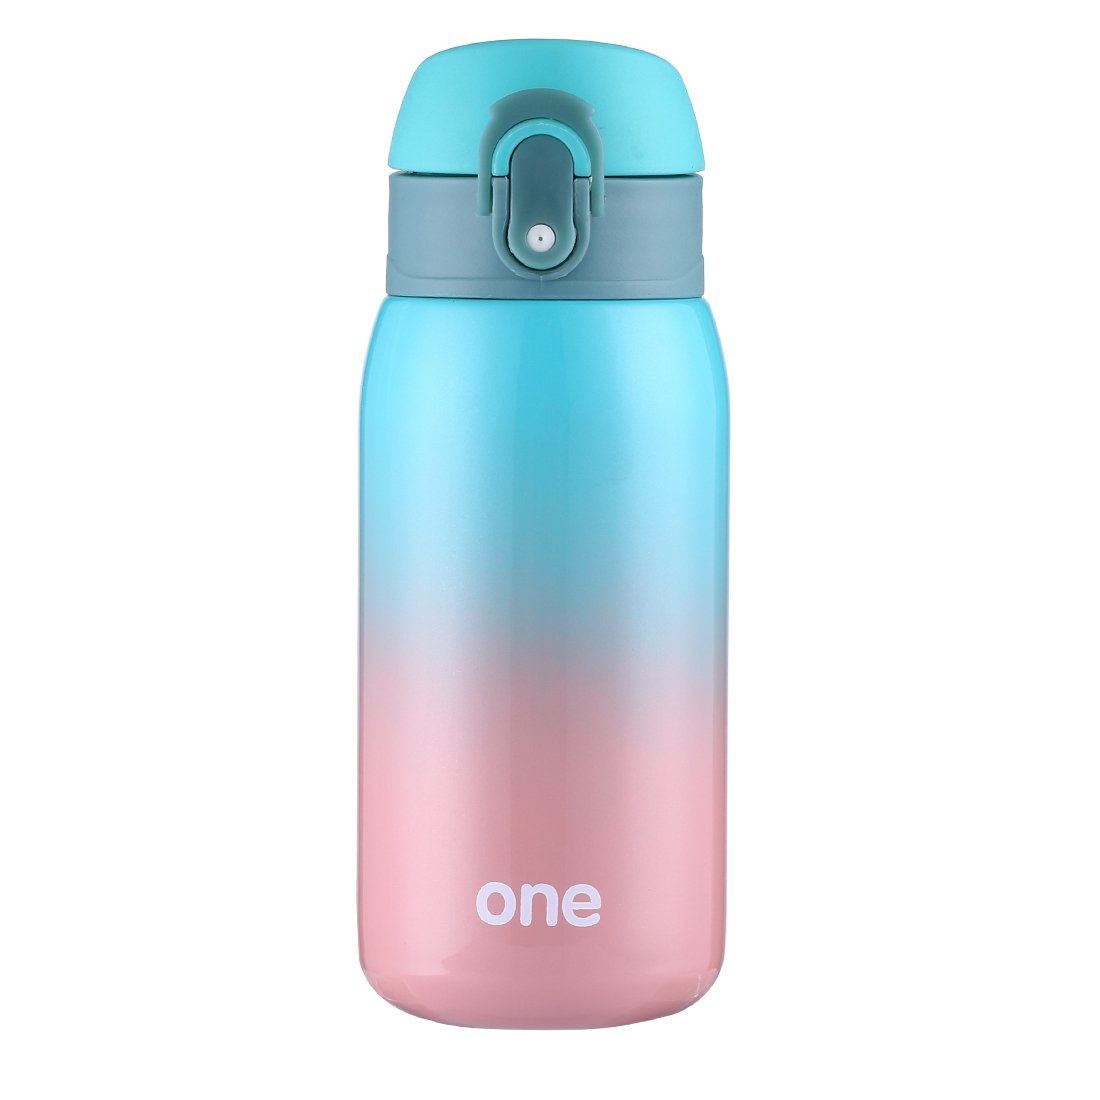 Mini Water Bottle for Kids& Adult, Vacuum Insulated Bottle, Travel Coffee Cup, Stainless Steel Thumbler, Ombre Bottle, Ombre - 320ml/11oz (Green-Pink)